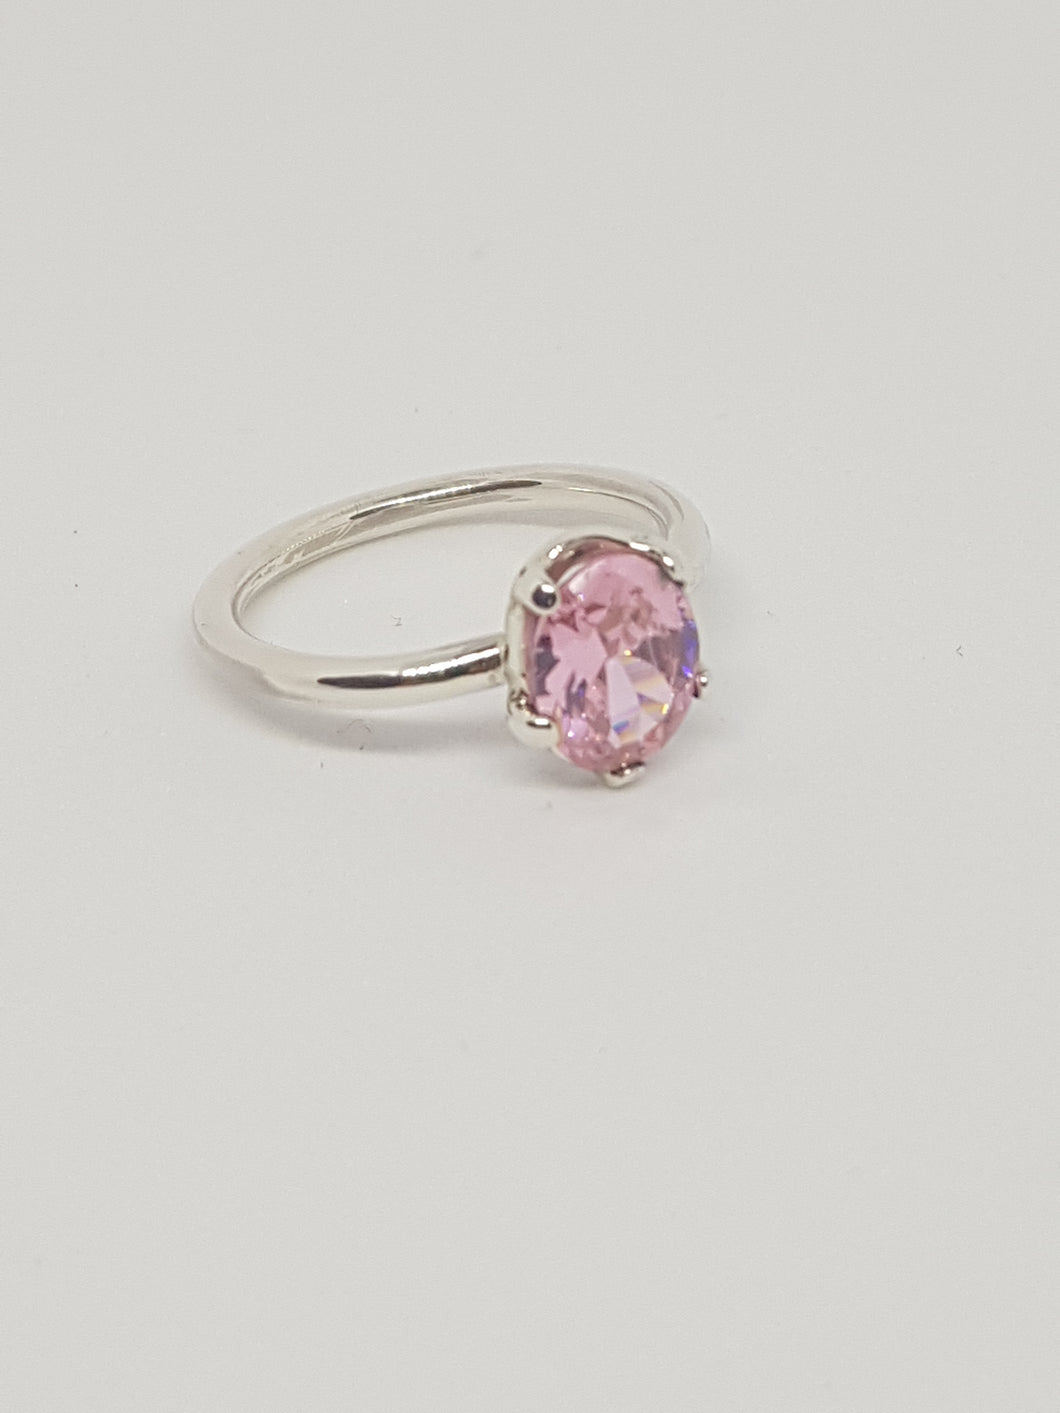 SOLD! Sterling silver ring with pink cubic zirconia